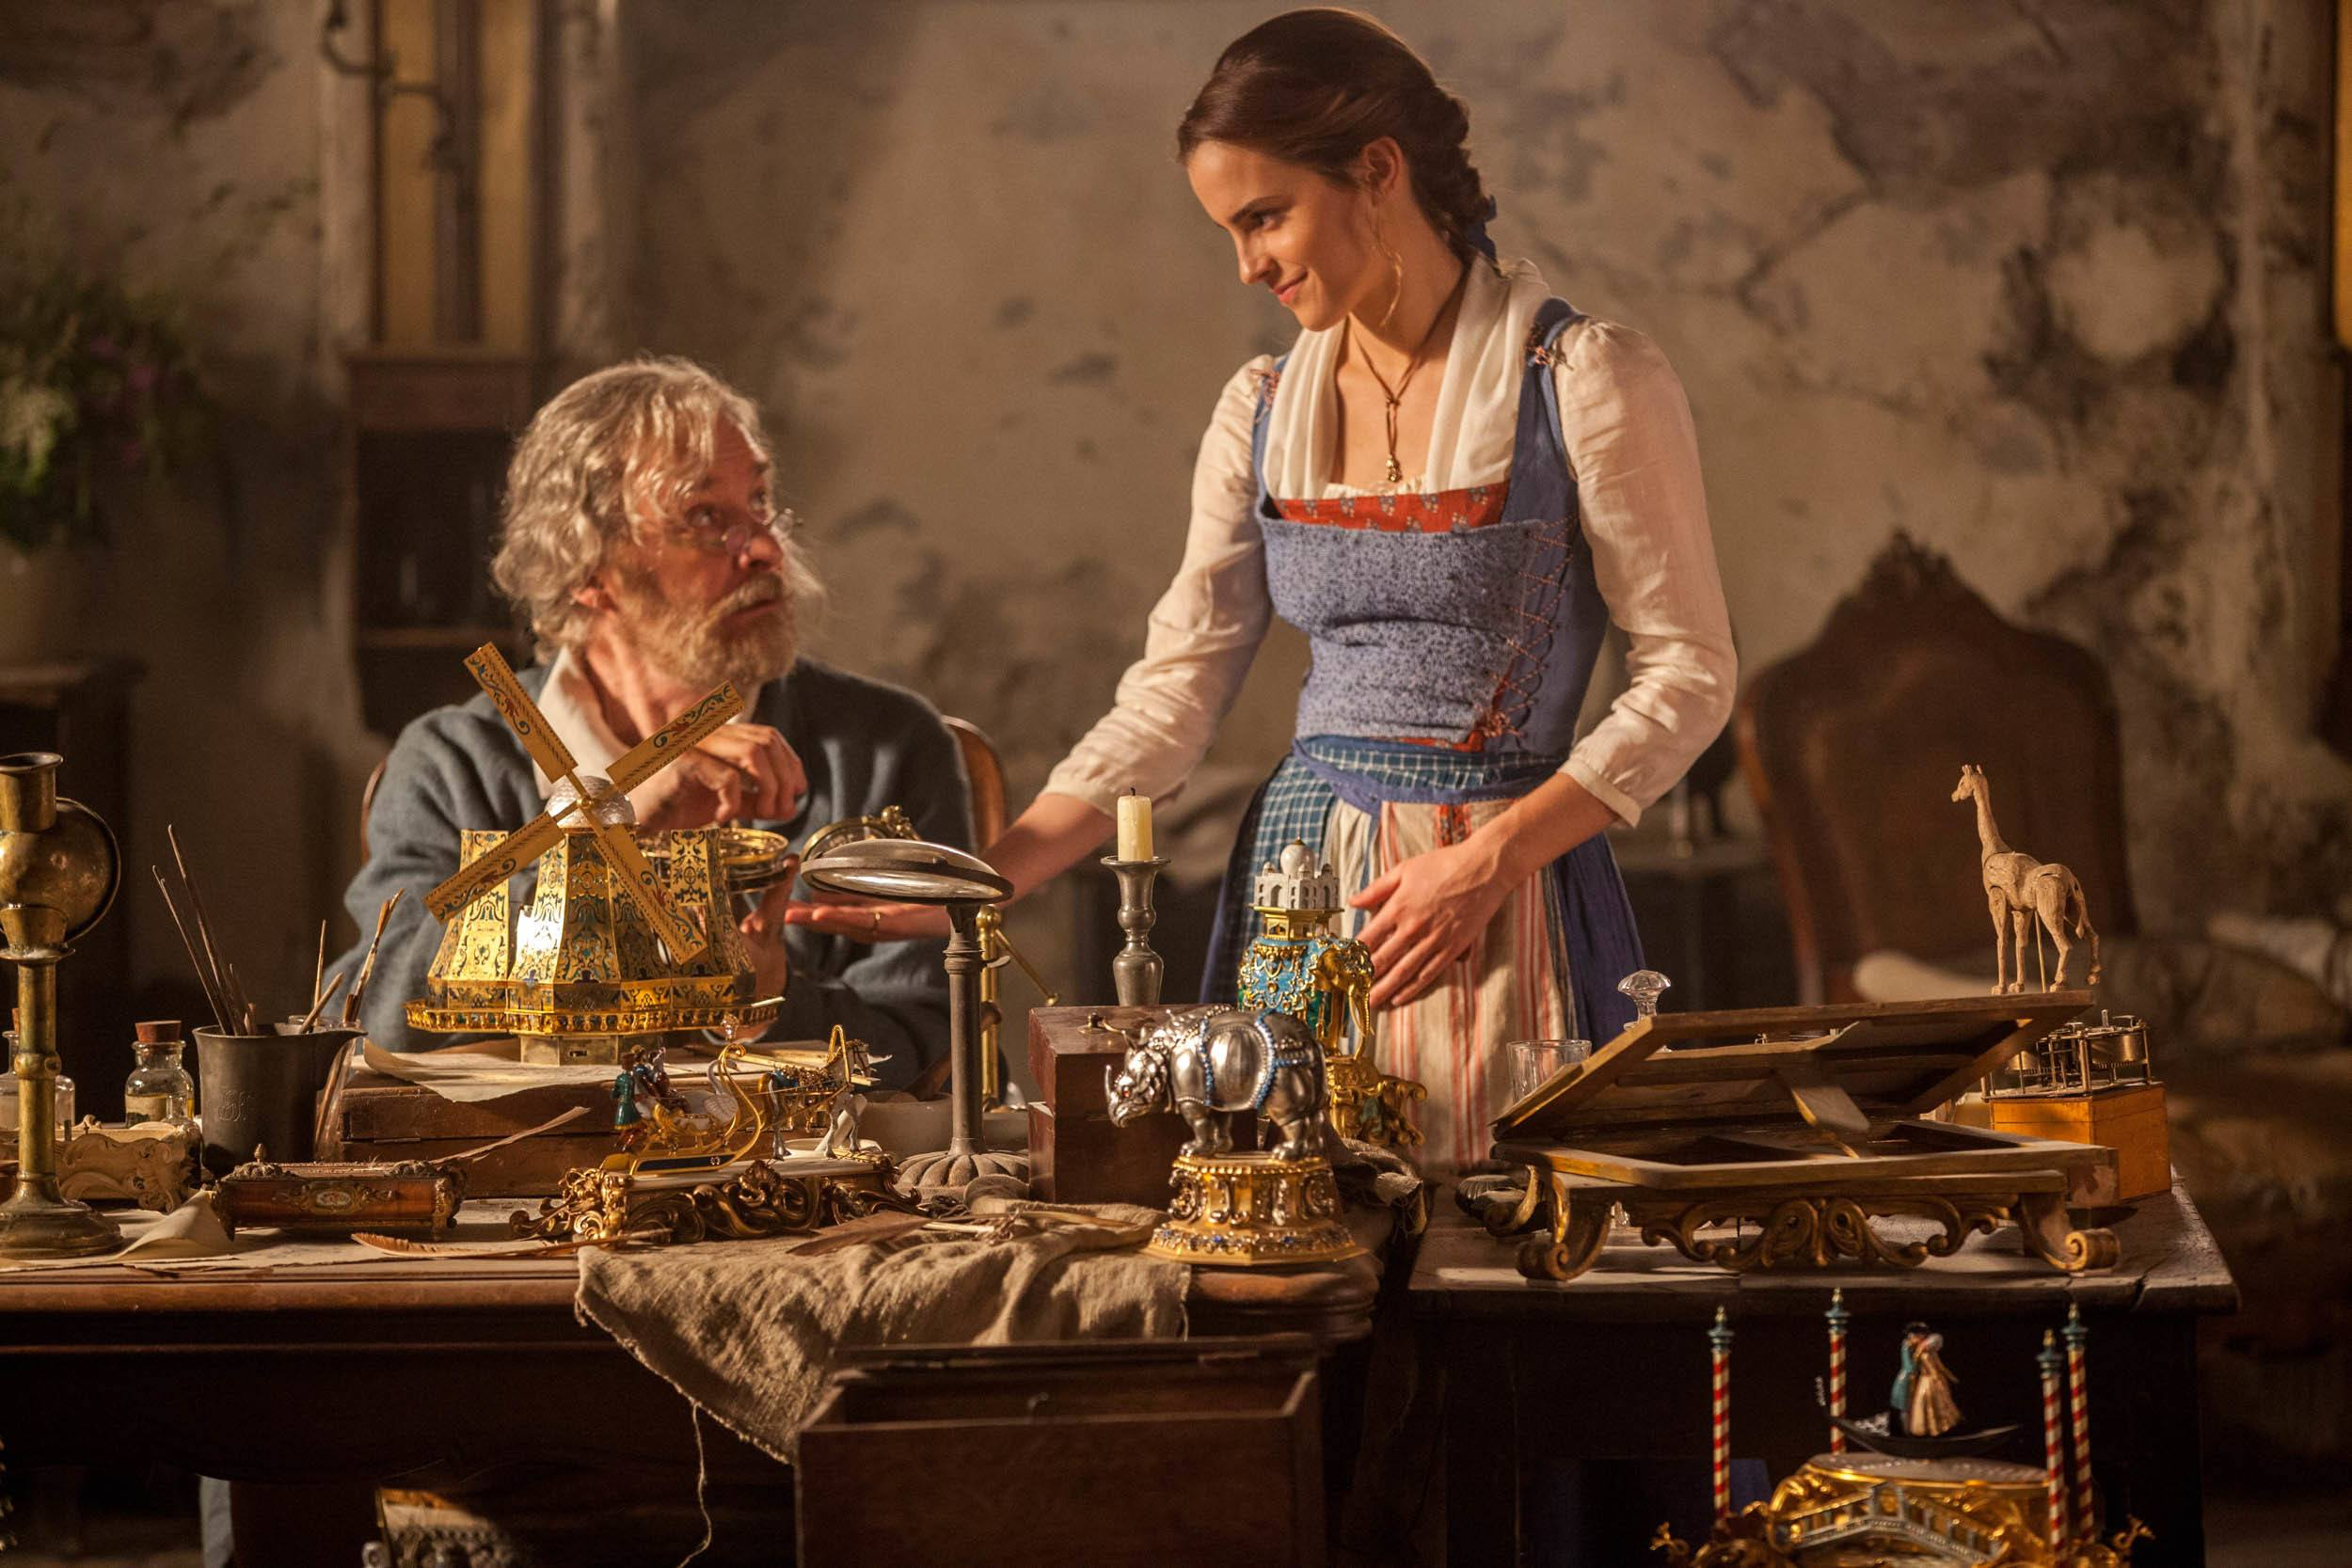 New Trailer for BEAUTY AND THE BEAST Re-Release in New York and Los Angeles For Your Consideration